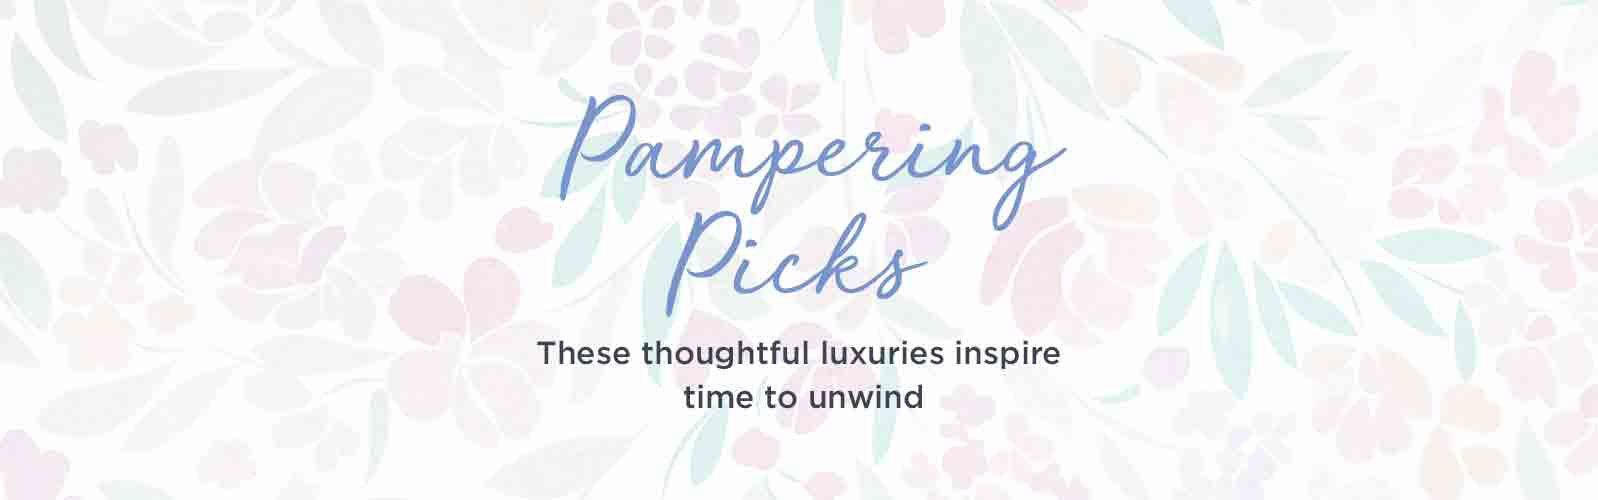 Pampering Picks  These thoughtful luxuries inspire time to unwind